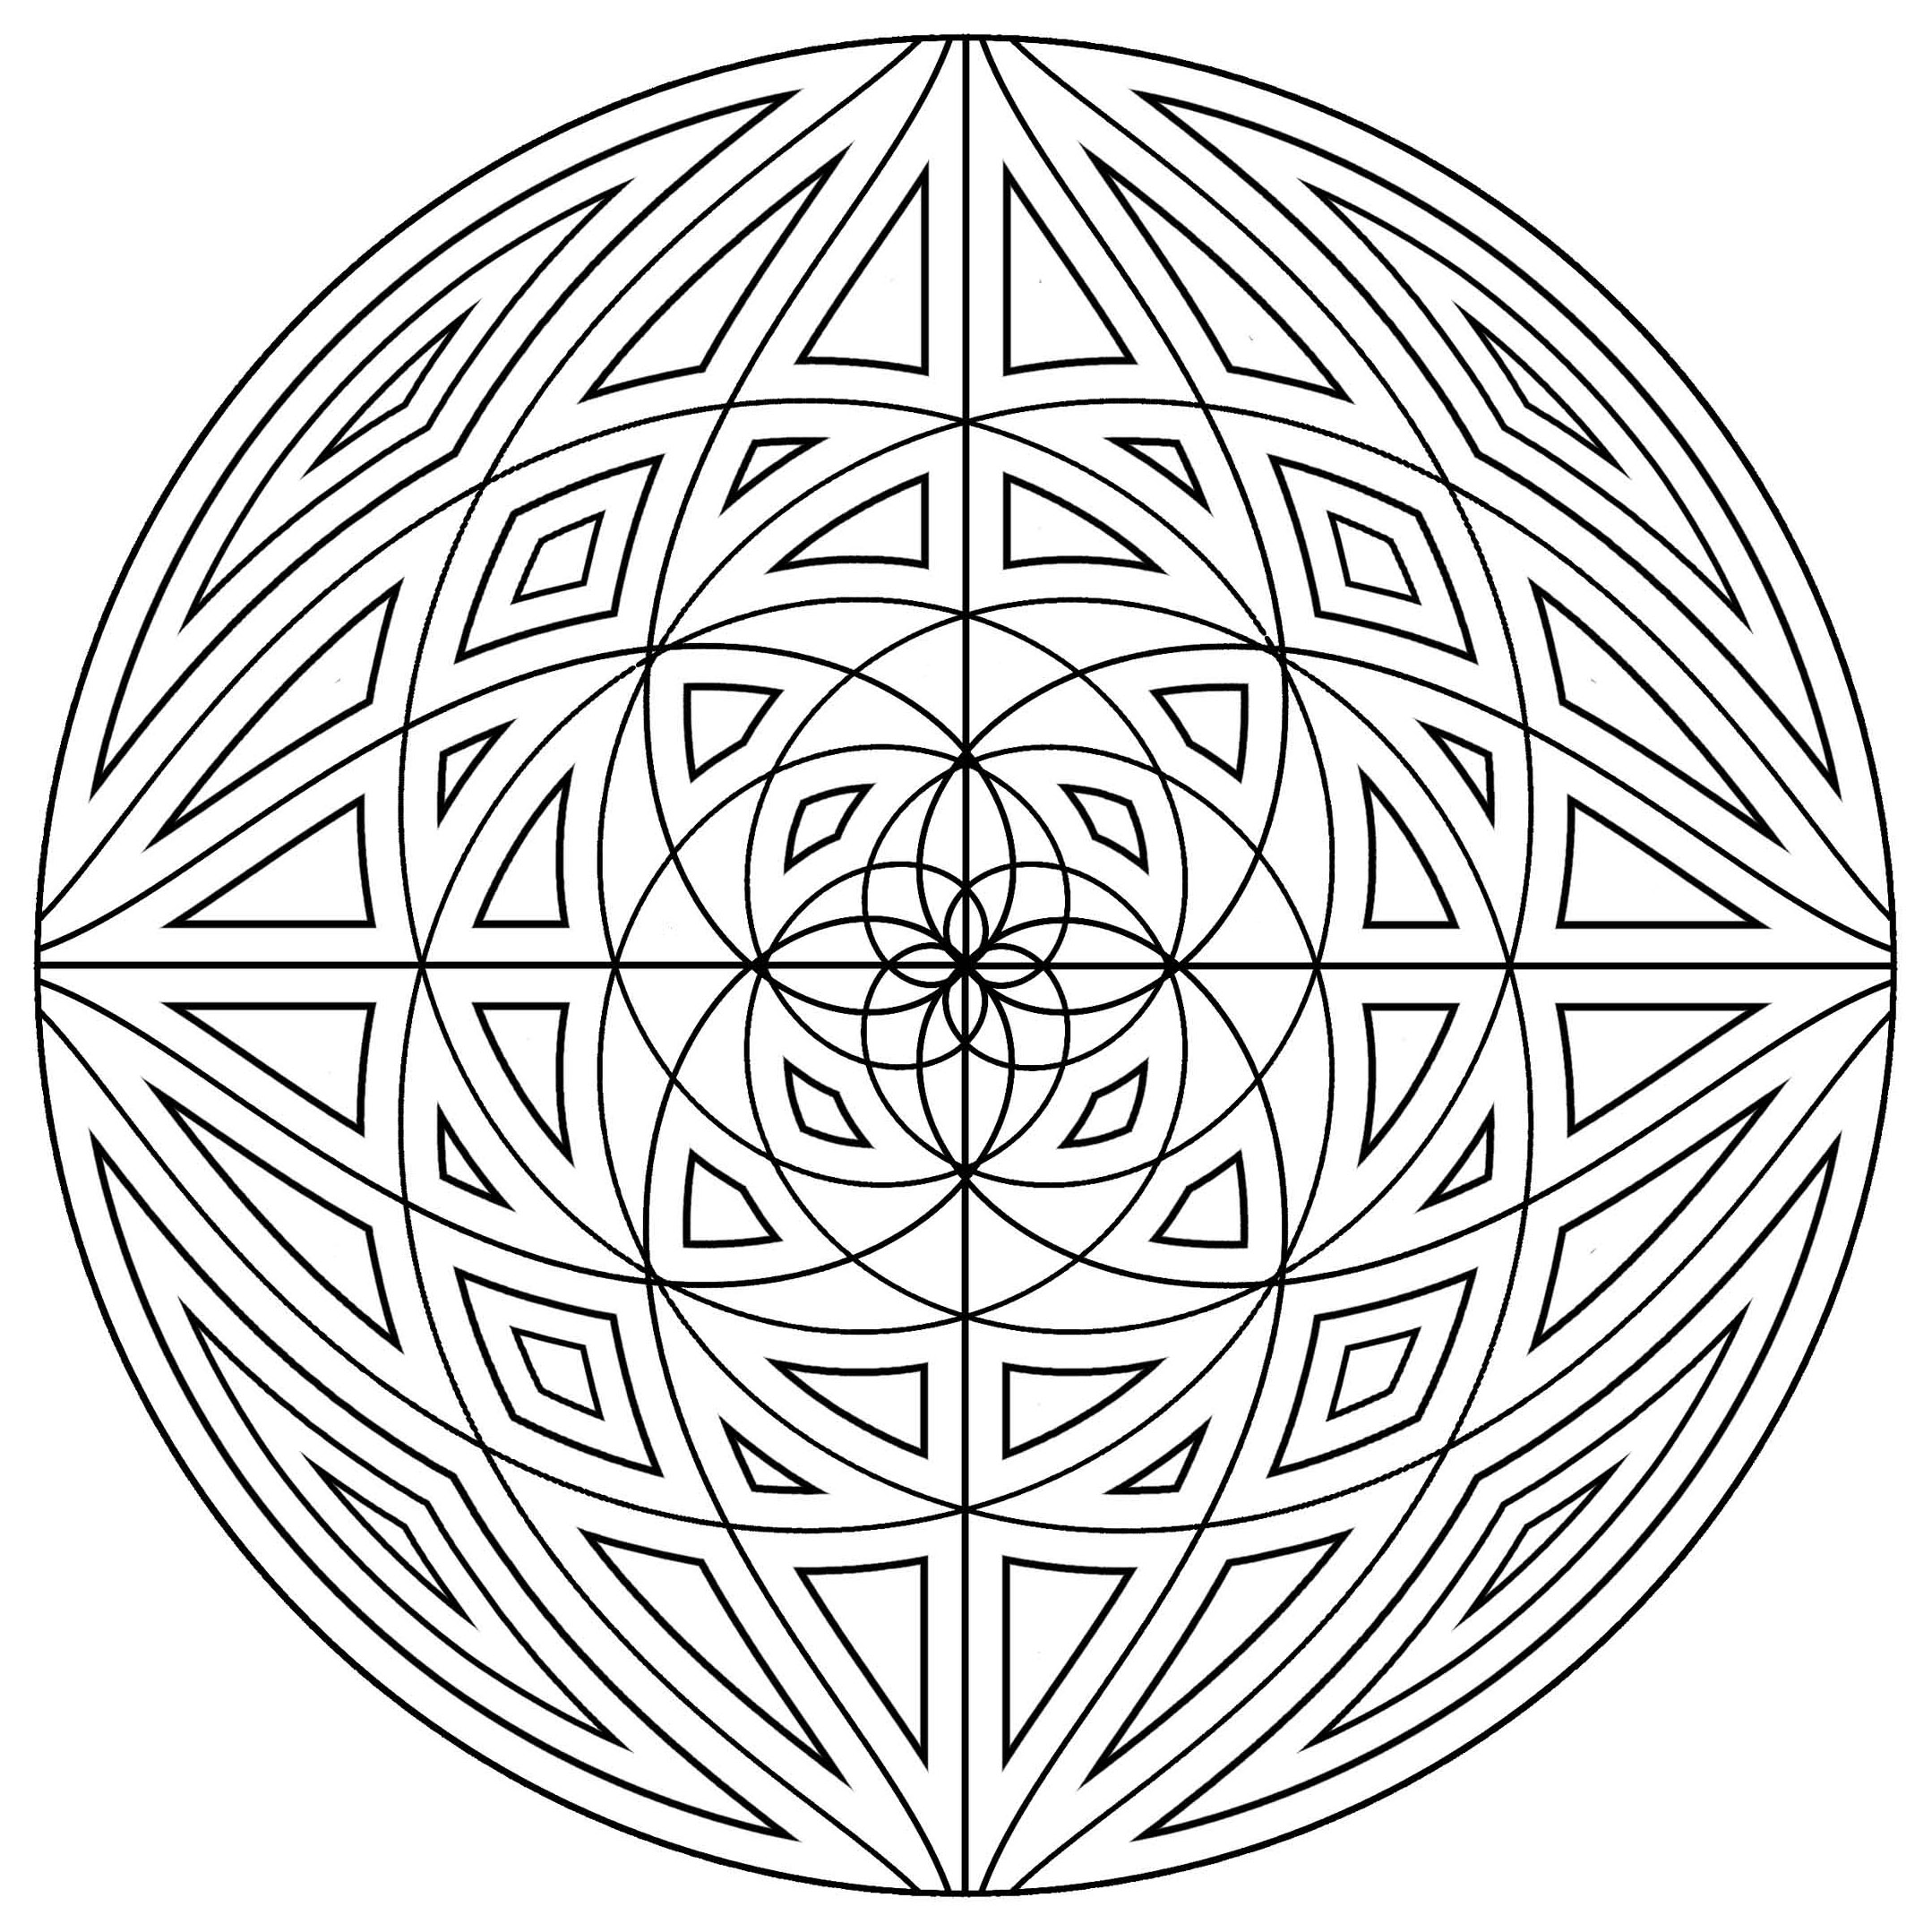 Mandala With Concentric Lines